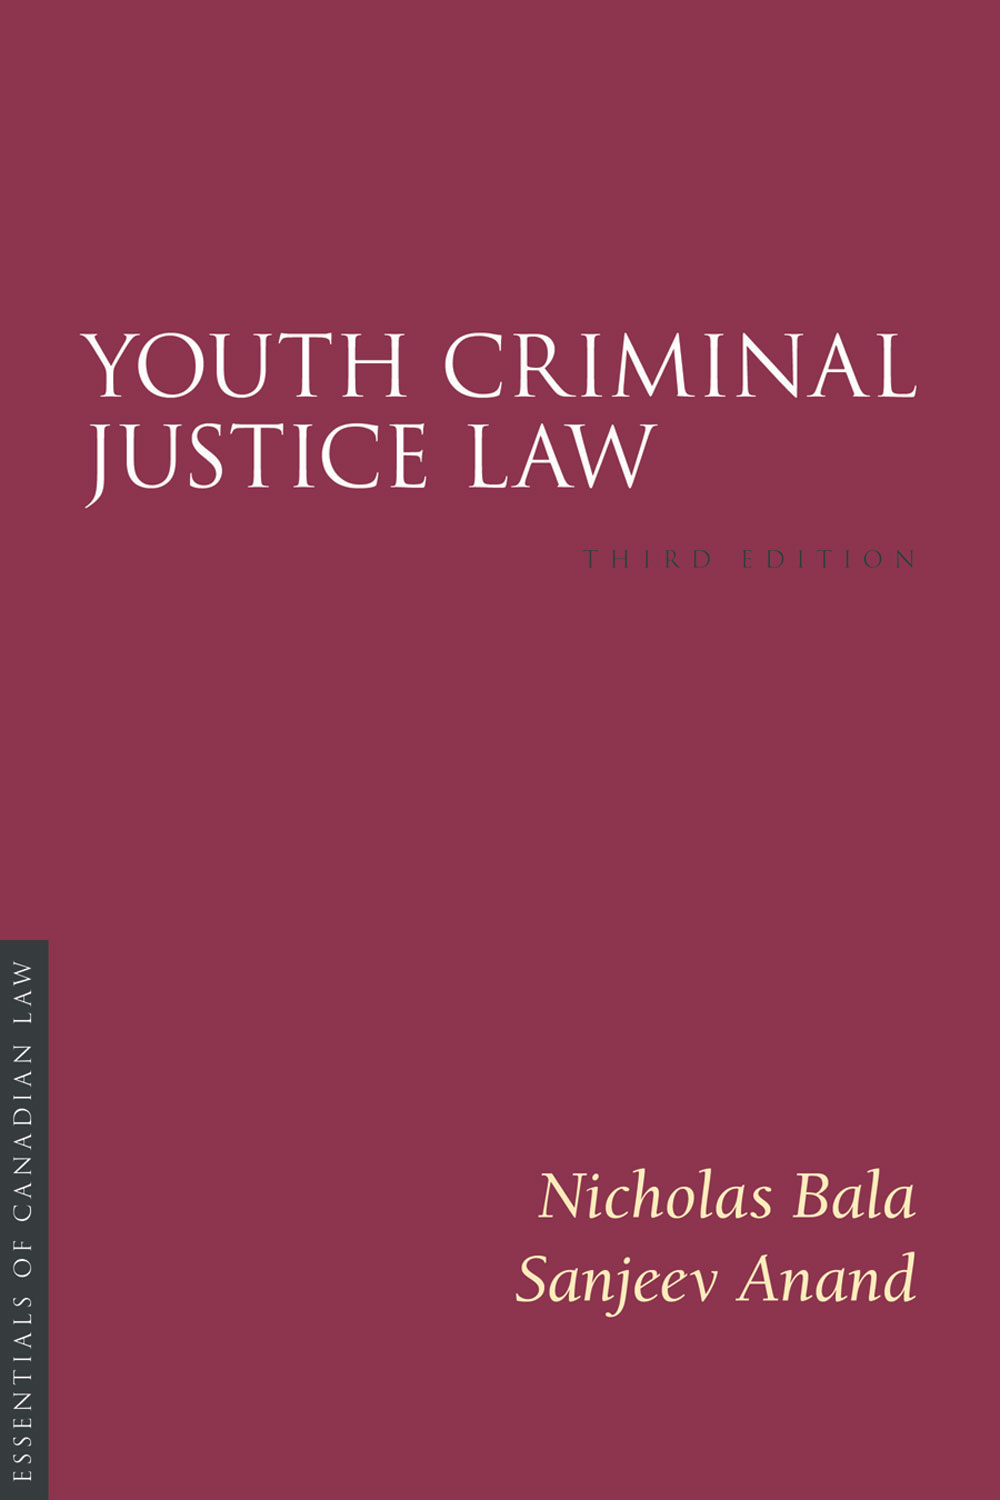 Youth Criminal Justice Law